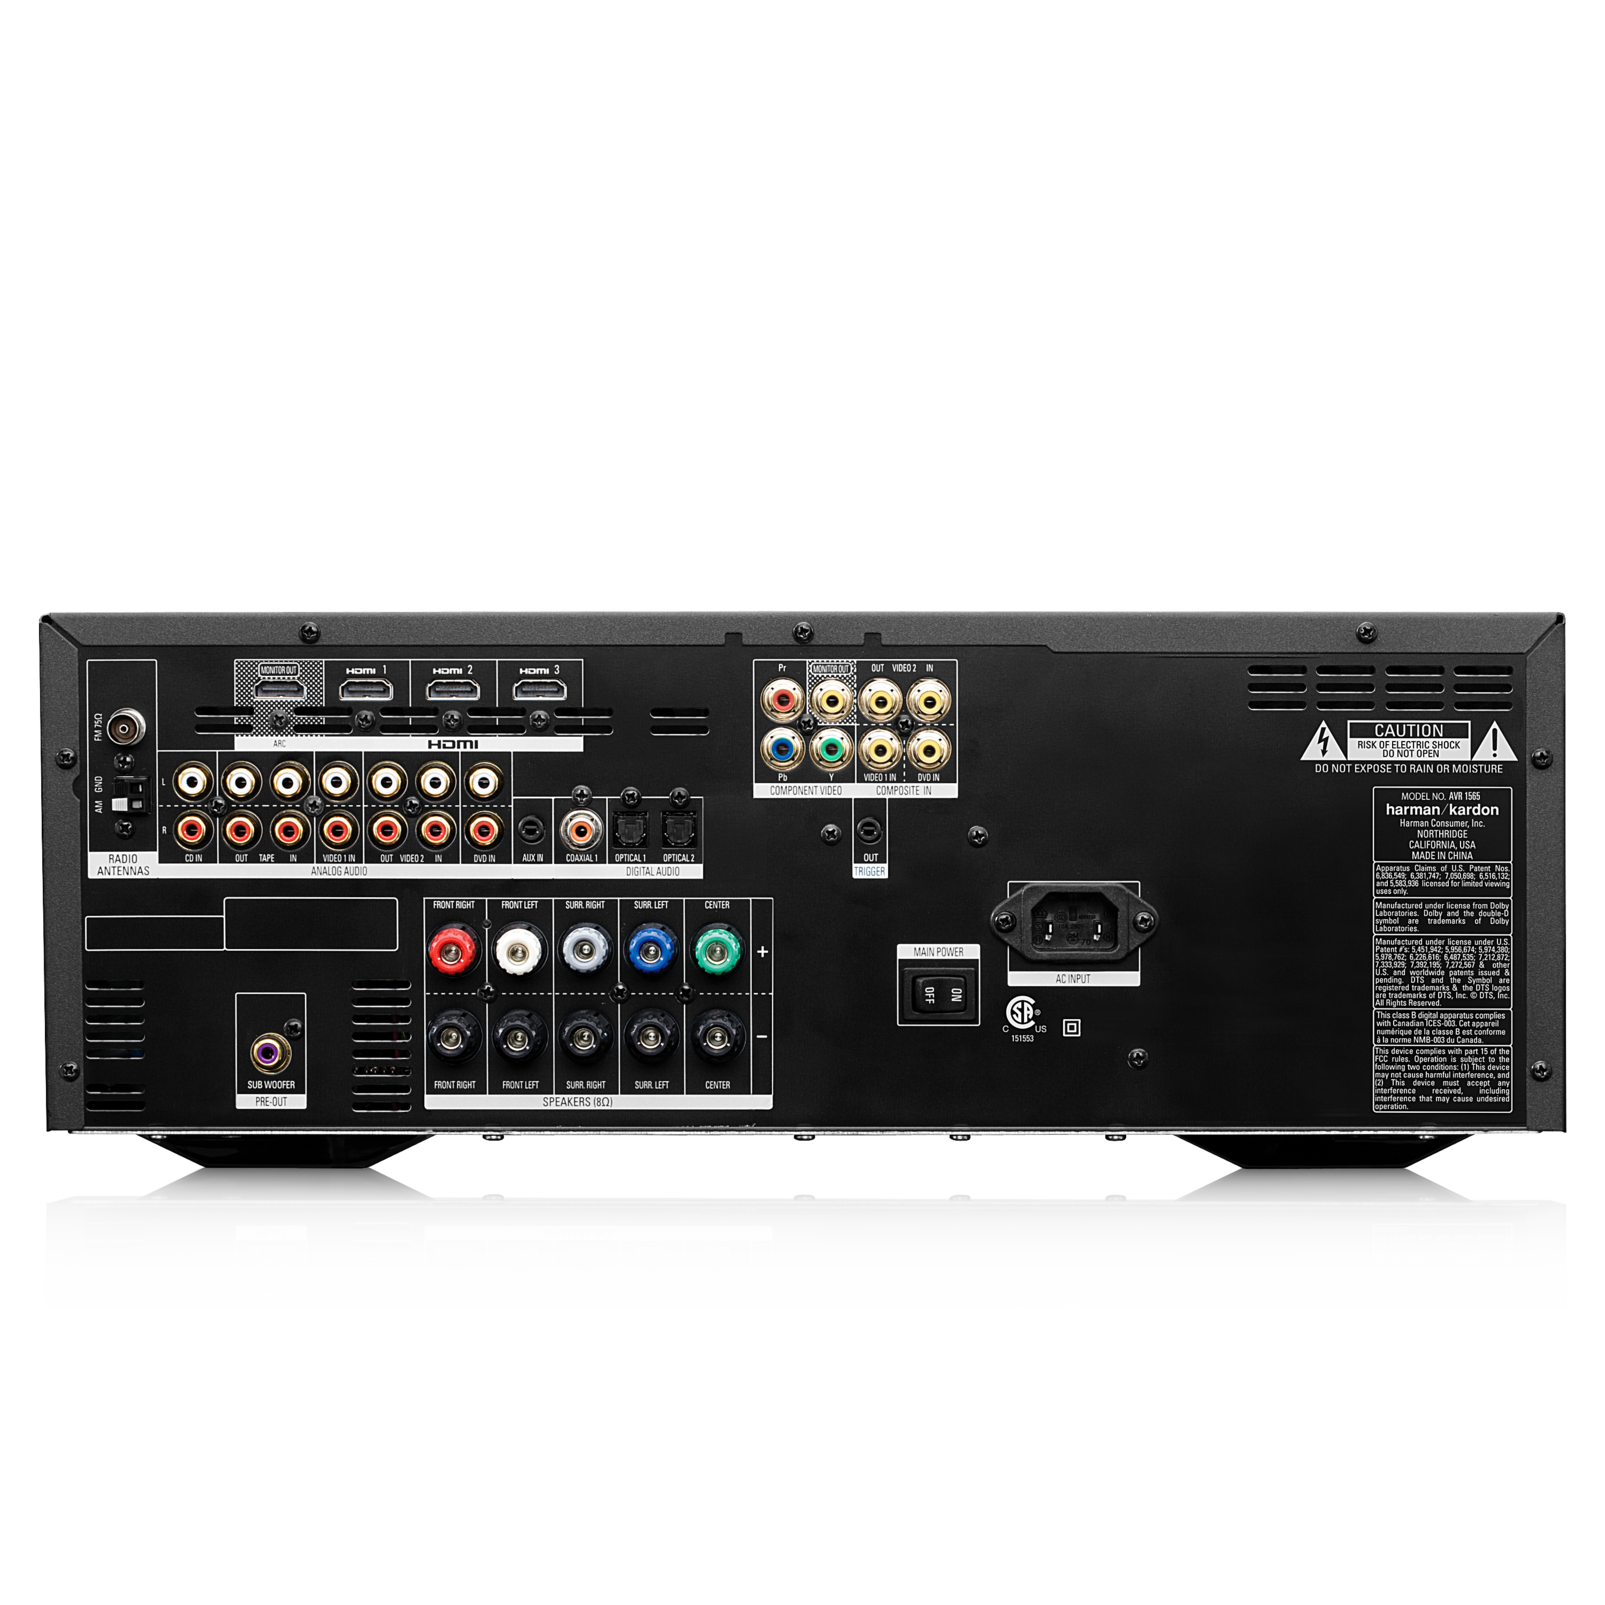 home theater 1000 complete 5 1 channel entertainment system rh harmankardon co uk harman kardon avr 1565 owners manual